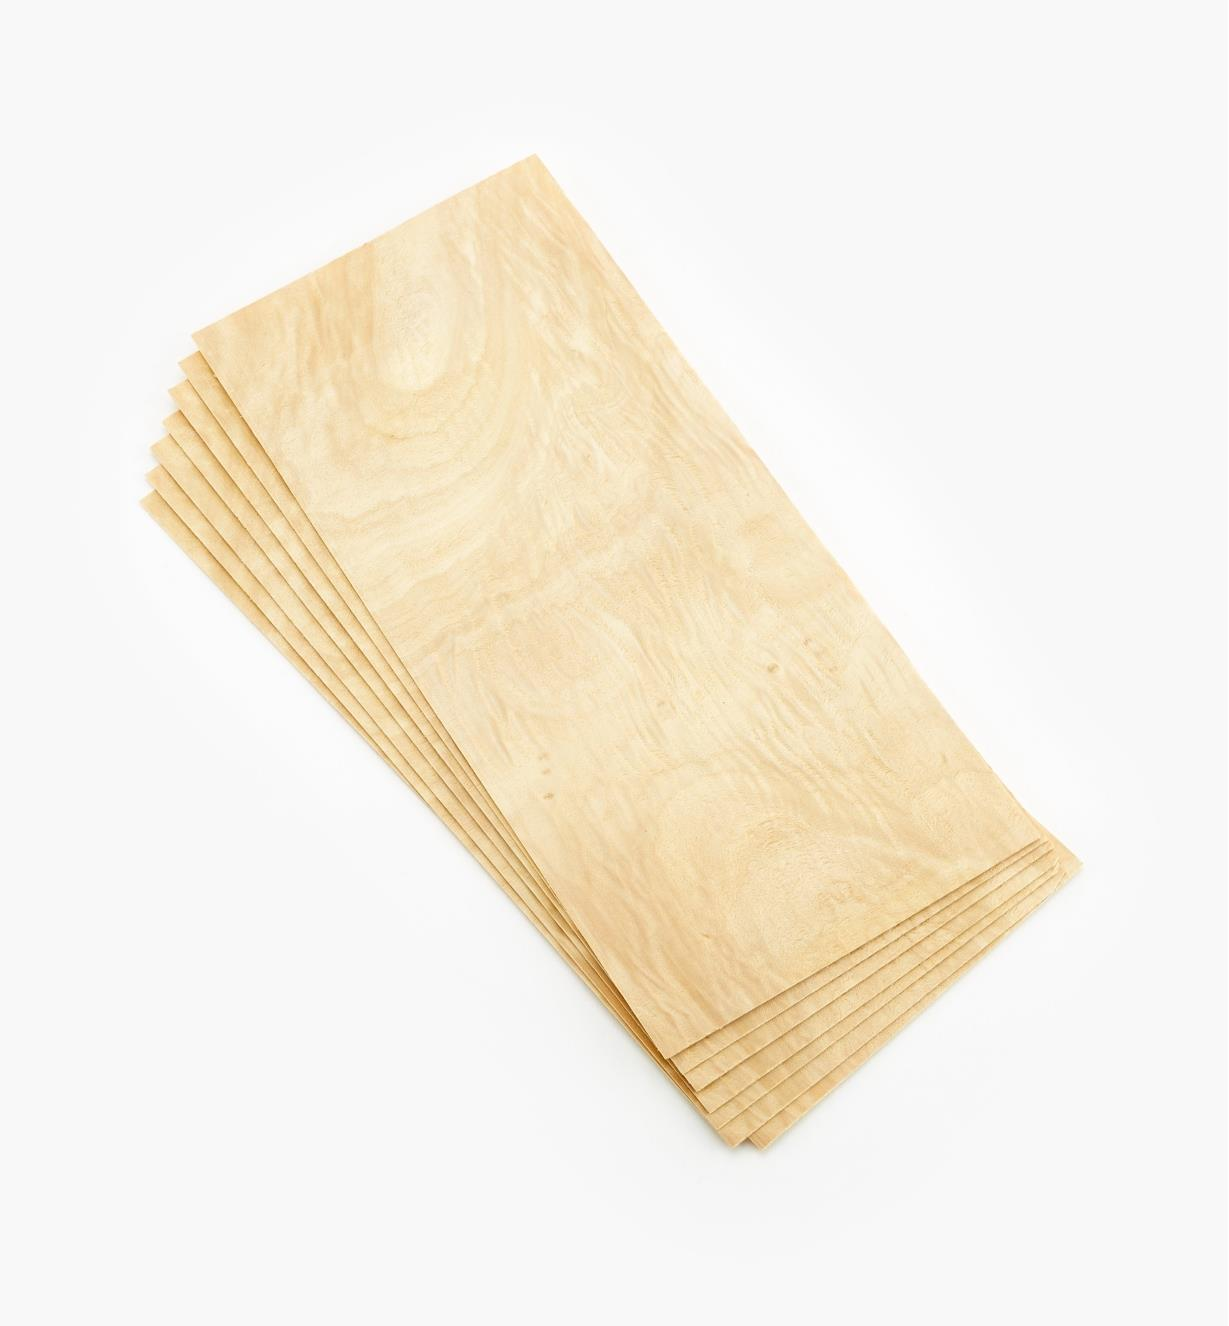 55K6410 - Quilted Maple, 3 sq.ft.